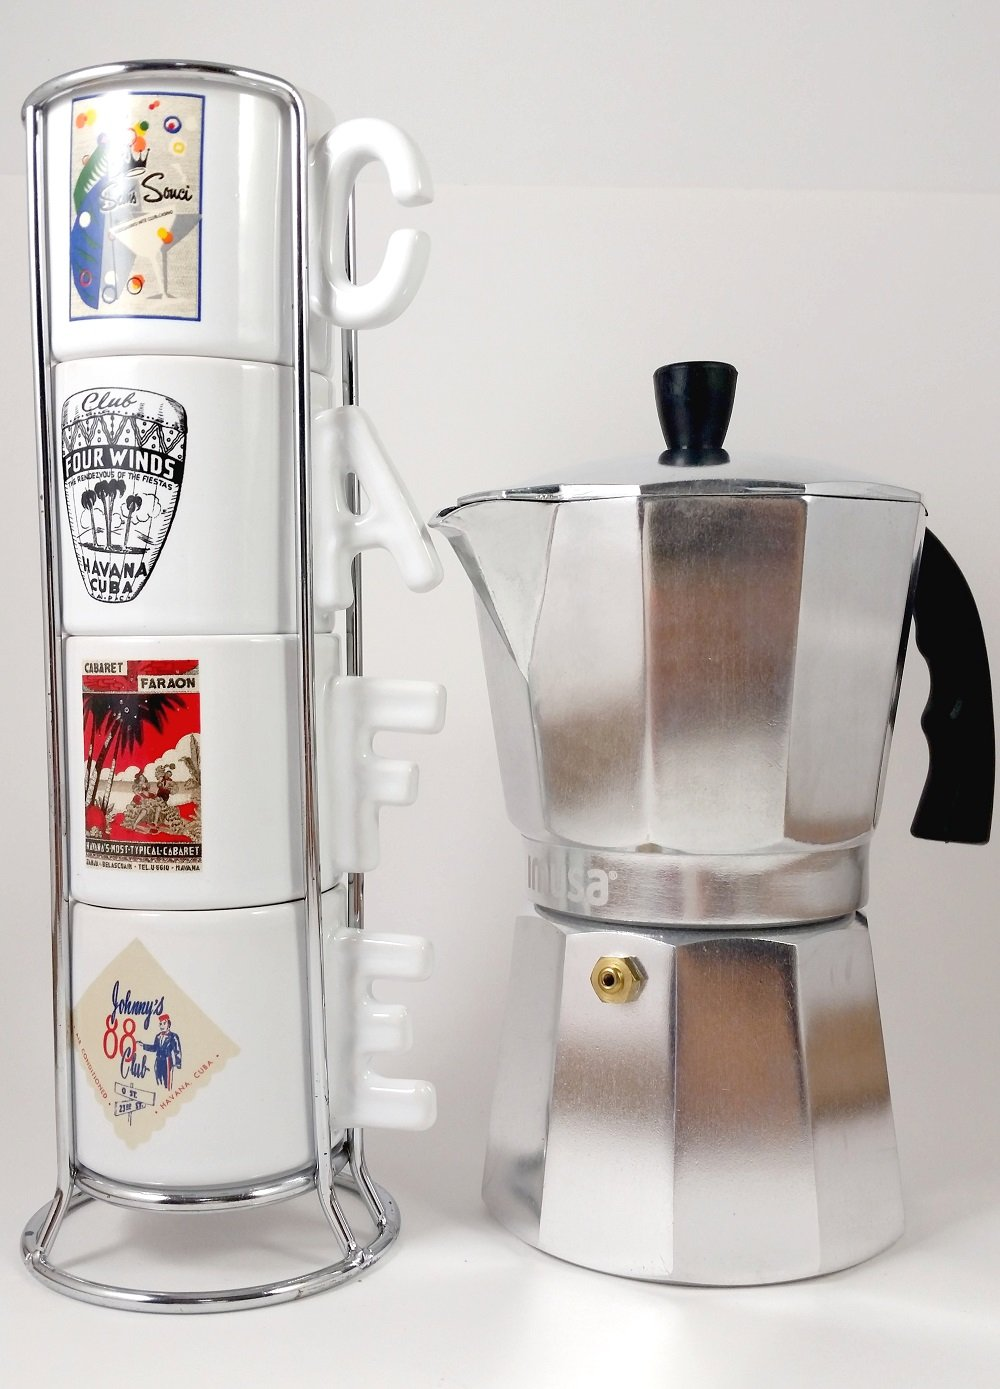 Imusa Classic Aluminum Stovetop Espresso Coffee Maker/Moka Pot 6-cups. Bundled with a White Coffee Mugs Set of 4 Printed with the most Famous Cuban Night Clubs and a Chrome Rack.